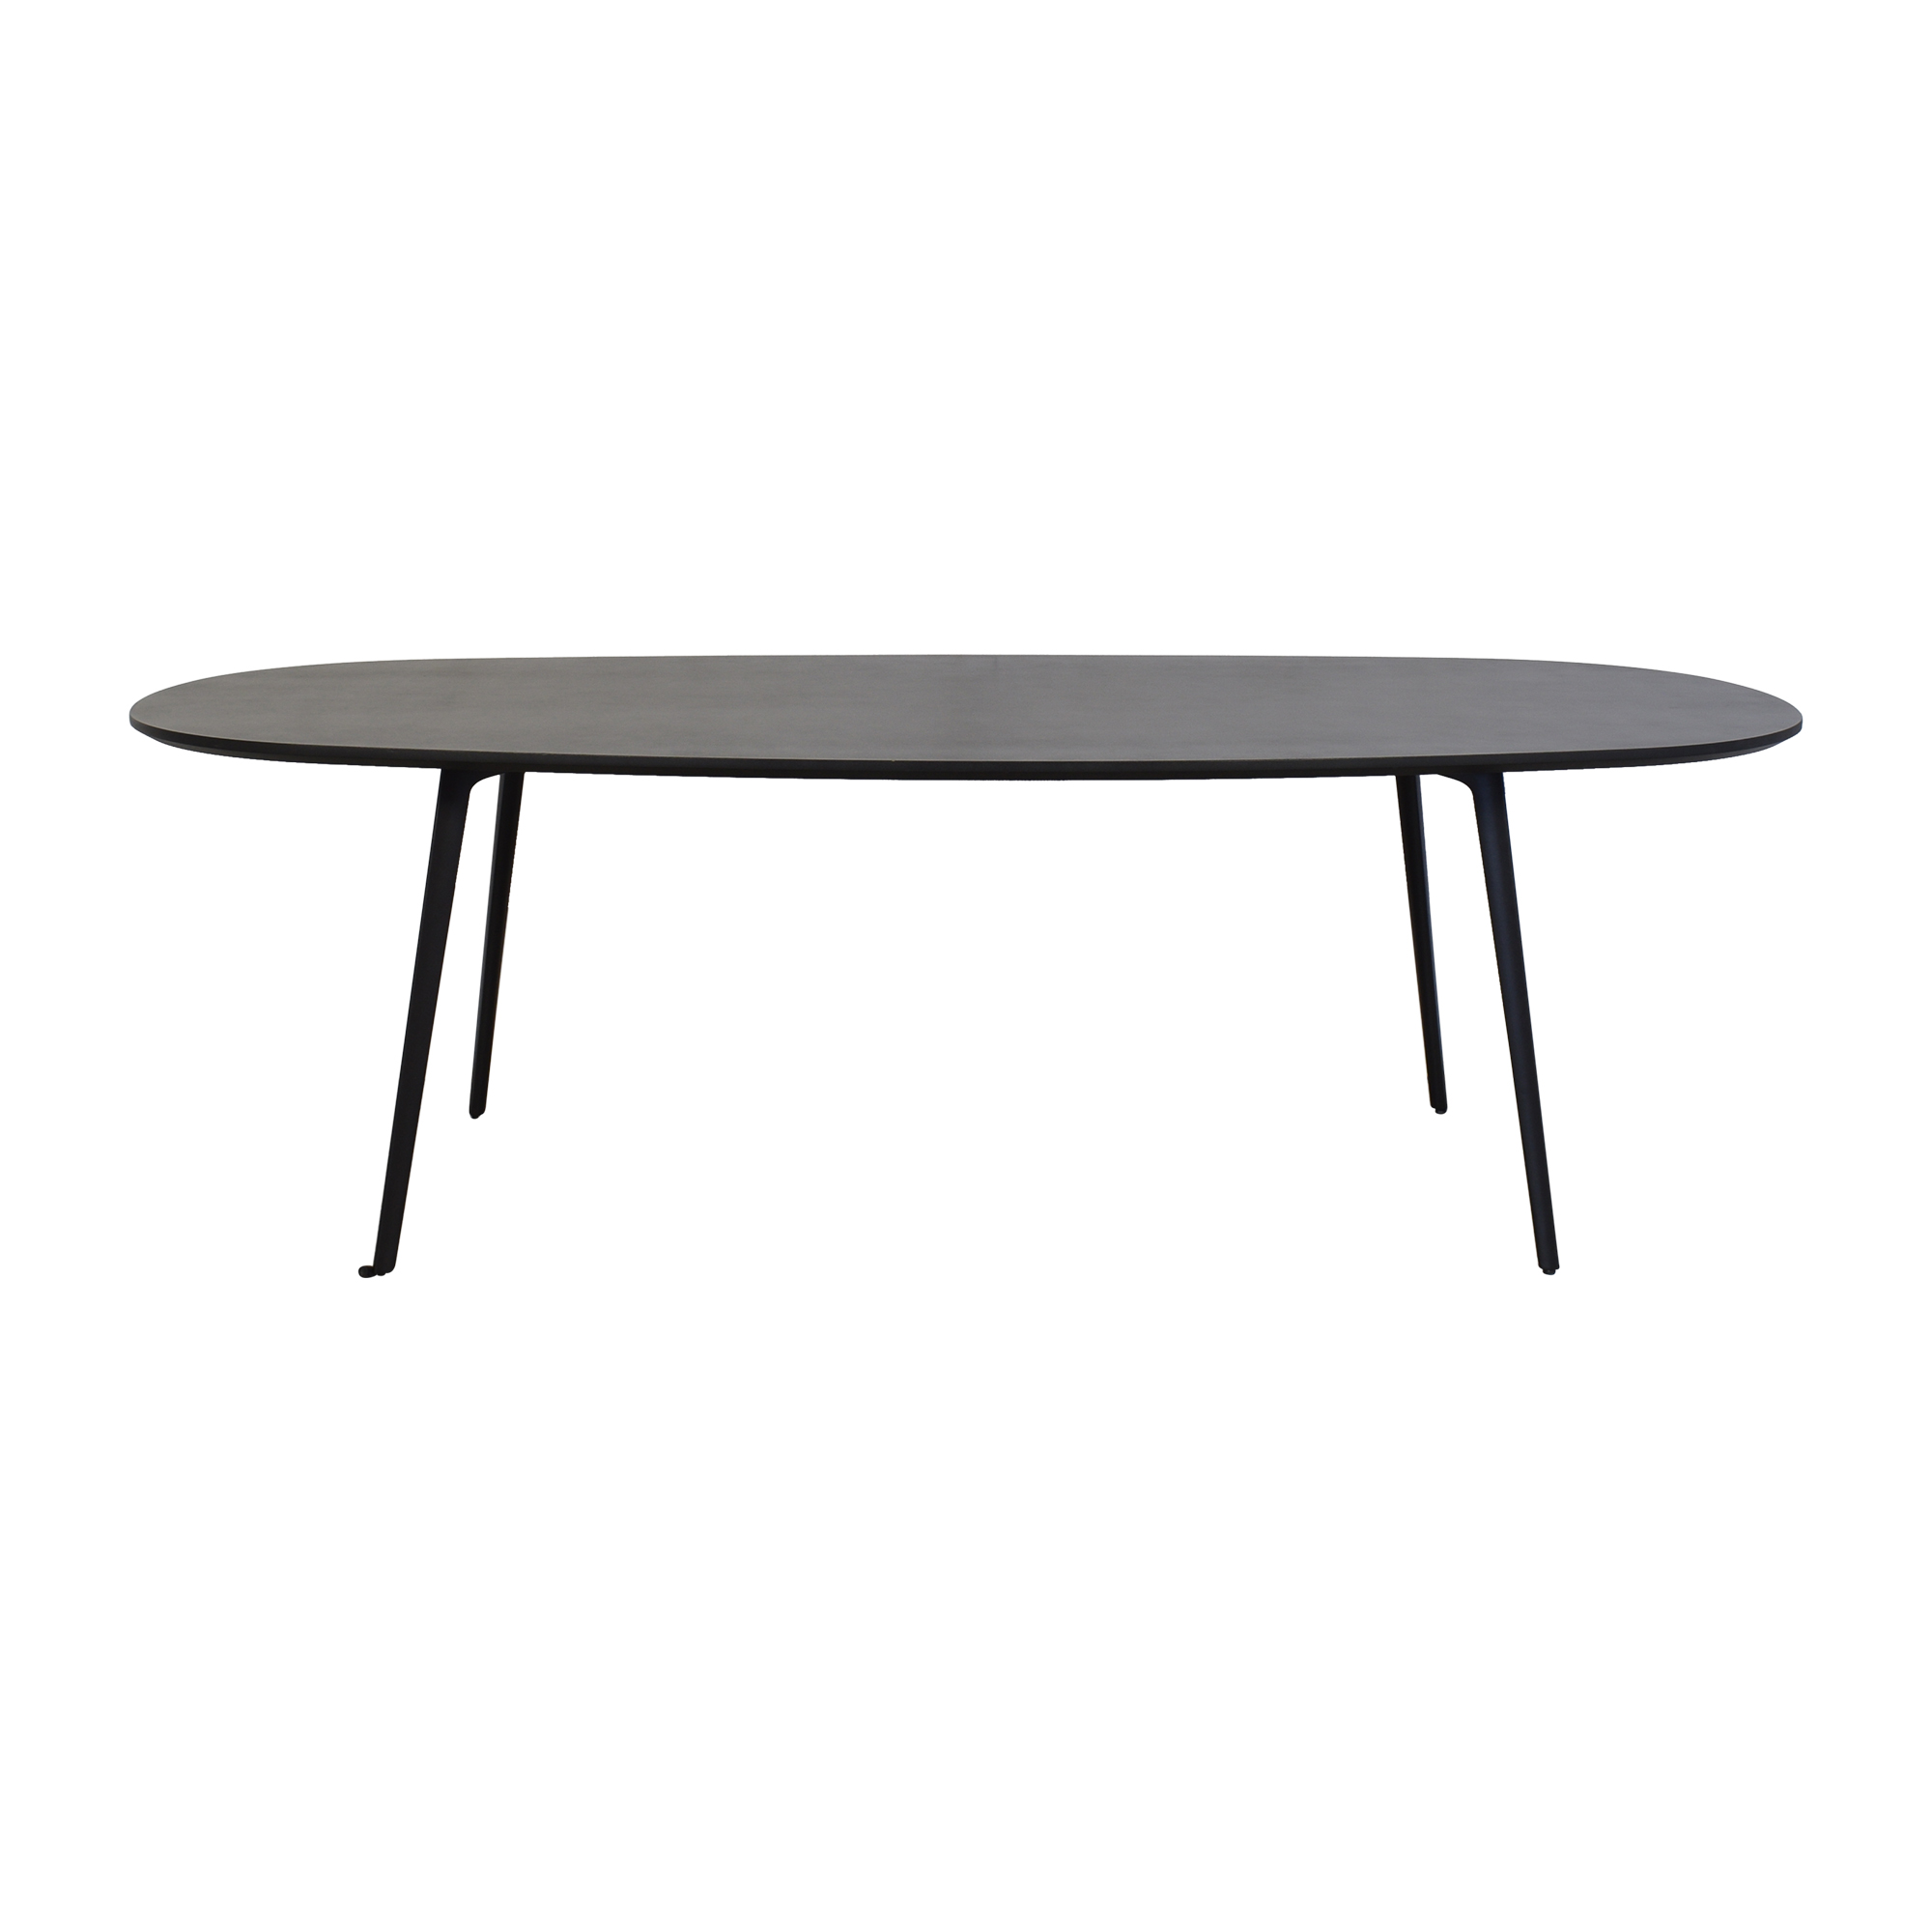 Leland International Leland International Fly Oval Table ma